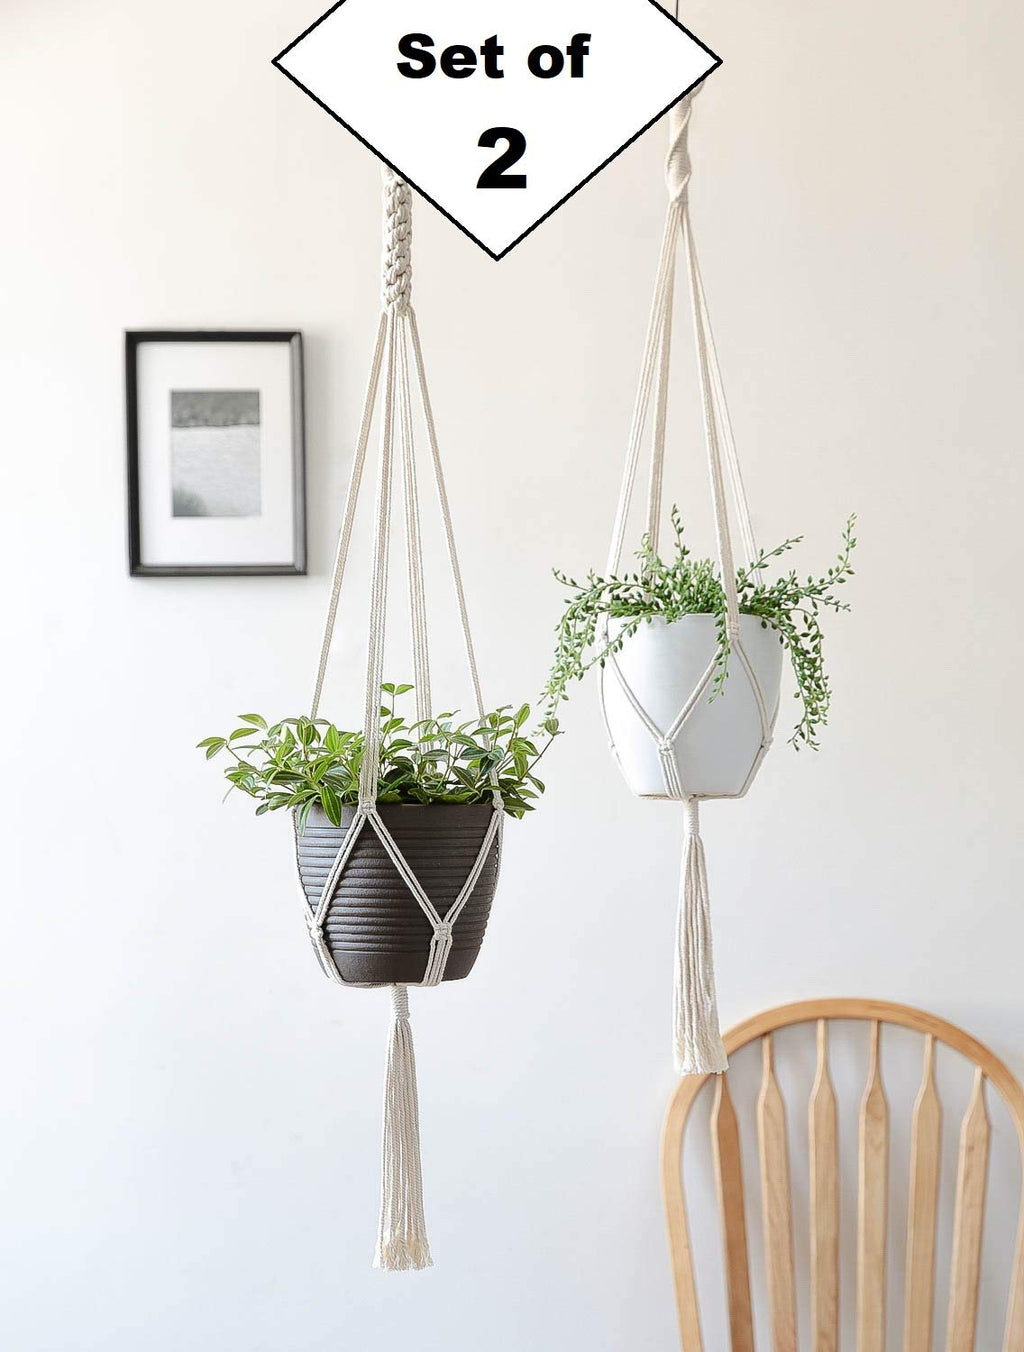 Set of 2 - Macrame Cotton Plant Hanger | Boho Decor, Rope Flower Pot Holder for Indoor Outdoor Balcony Garden | Home Decor